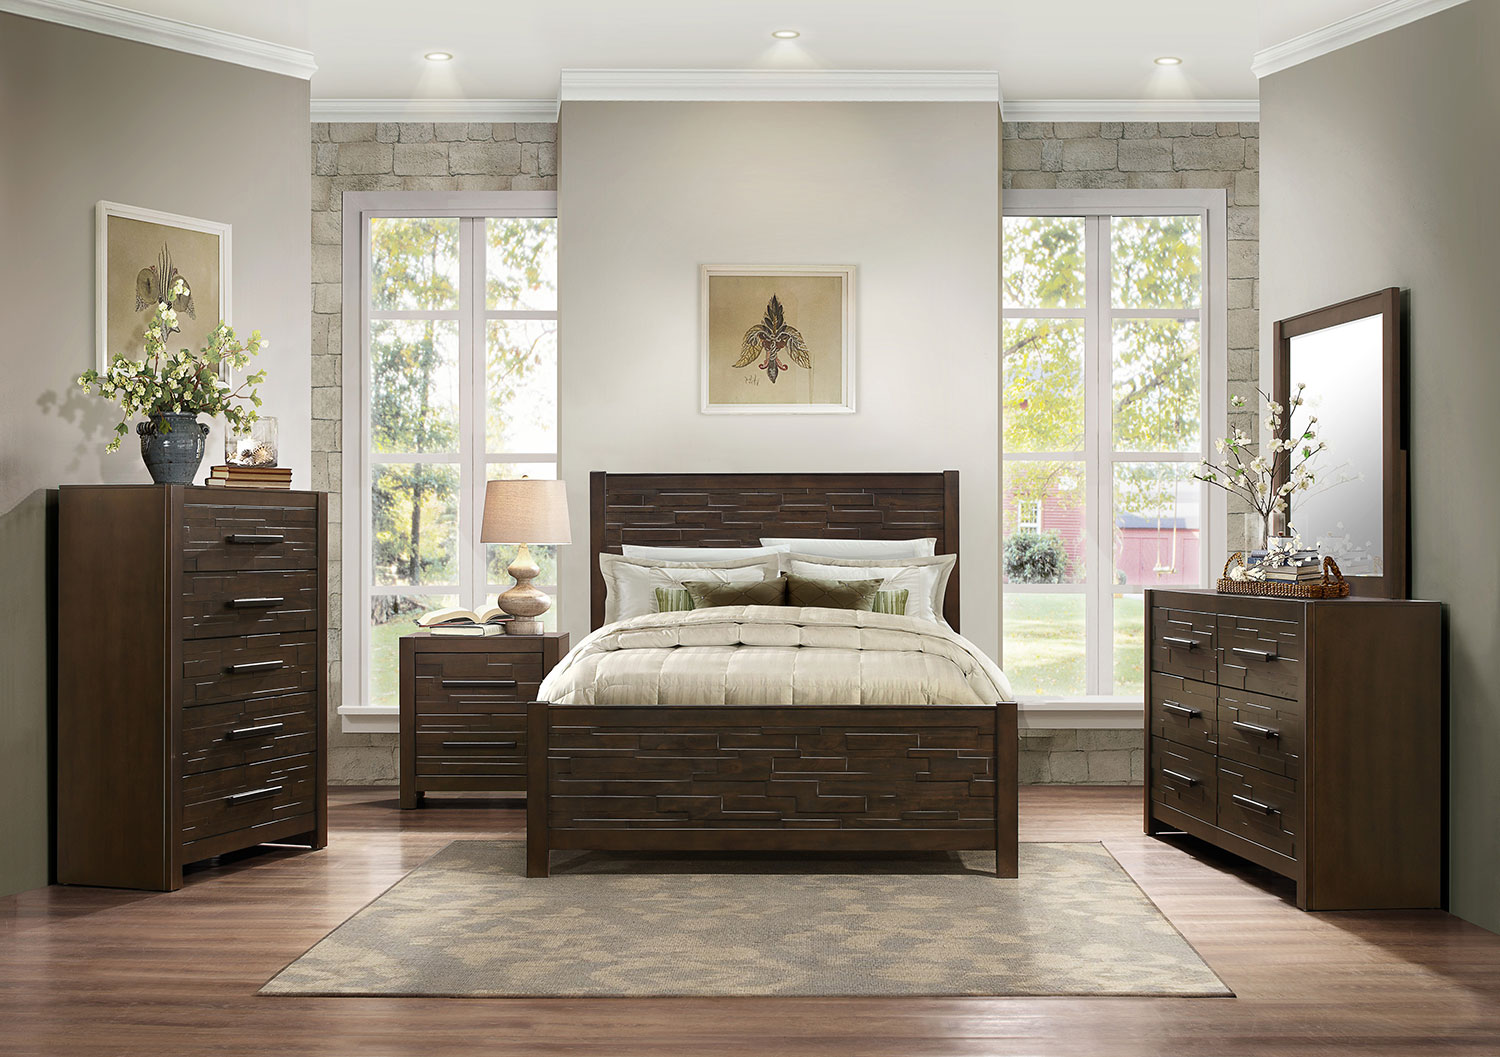 Homelegance Bowers Bedroom Set - Rustic Java Brown